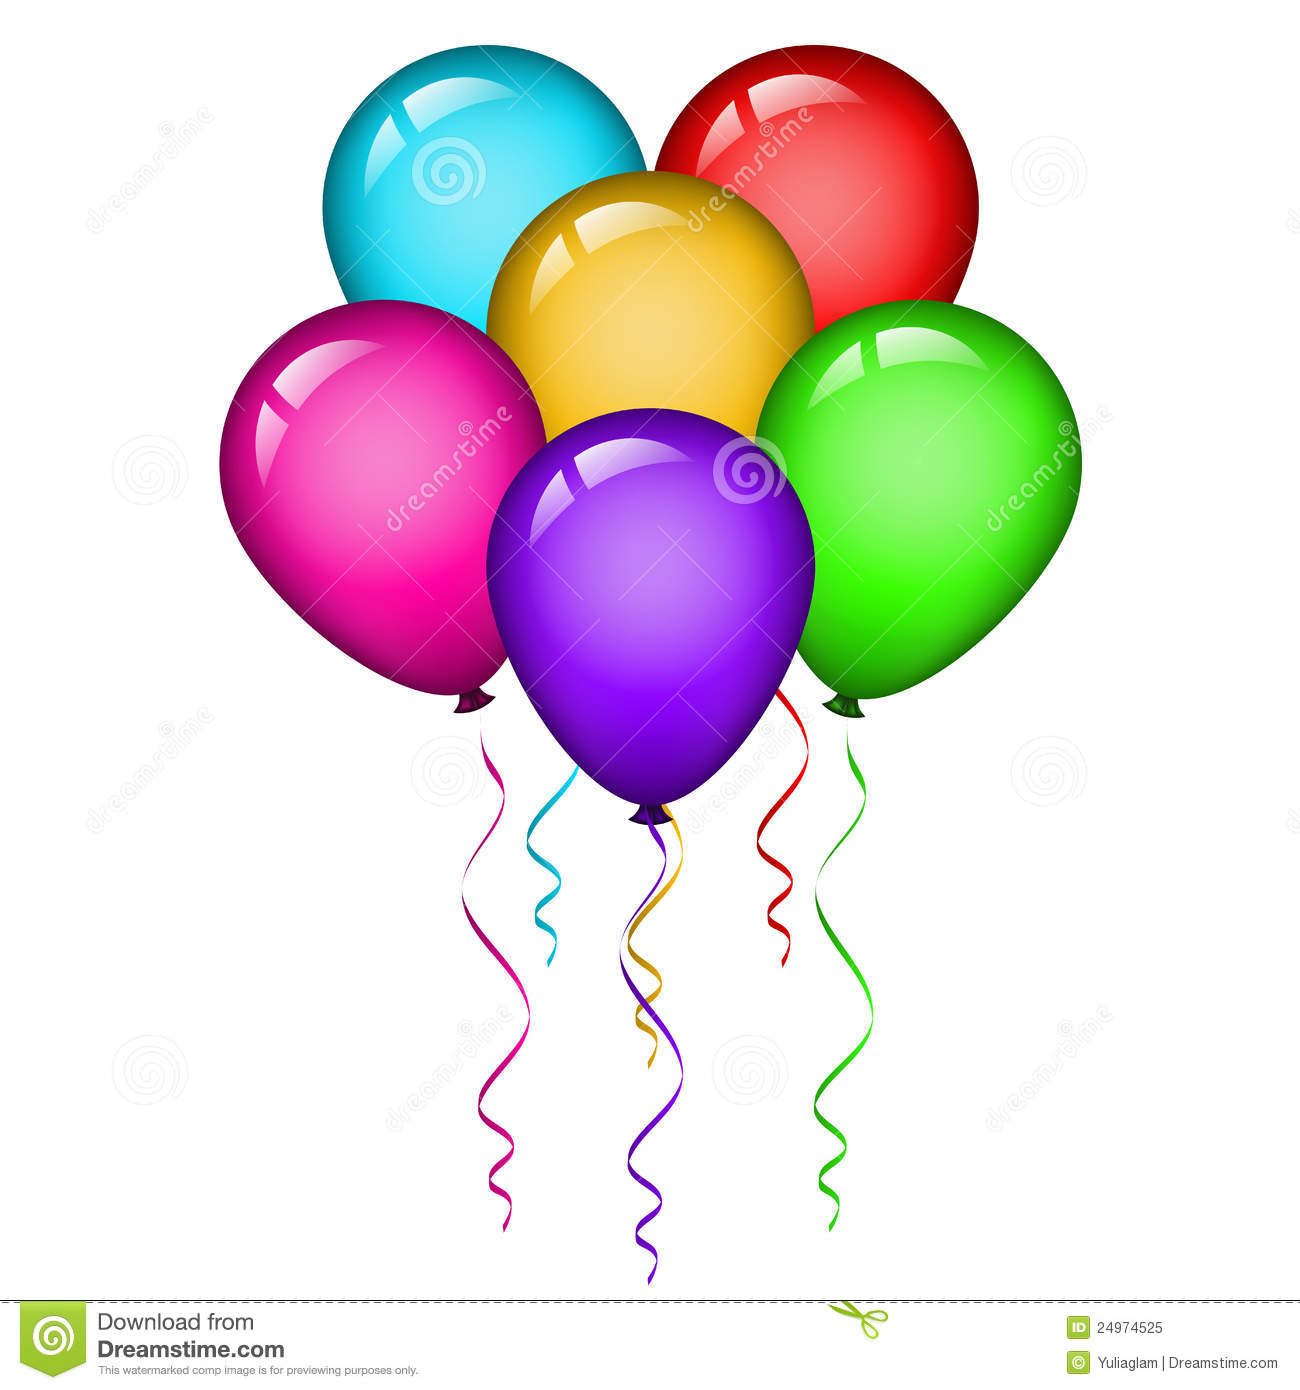 Colorful Balloons Stock Vector Illustration Of Invitation